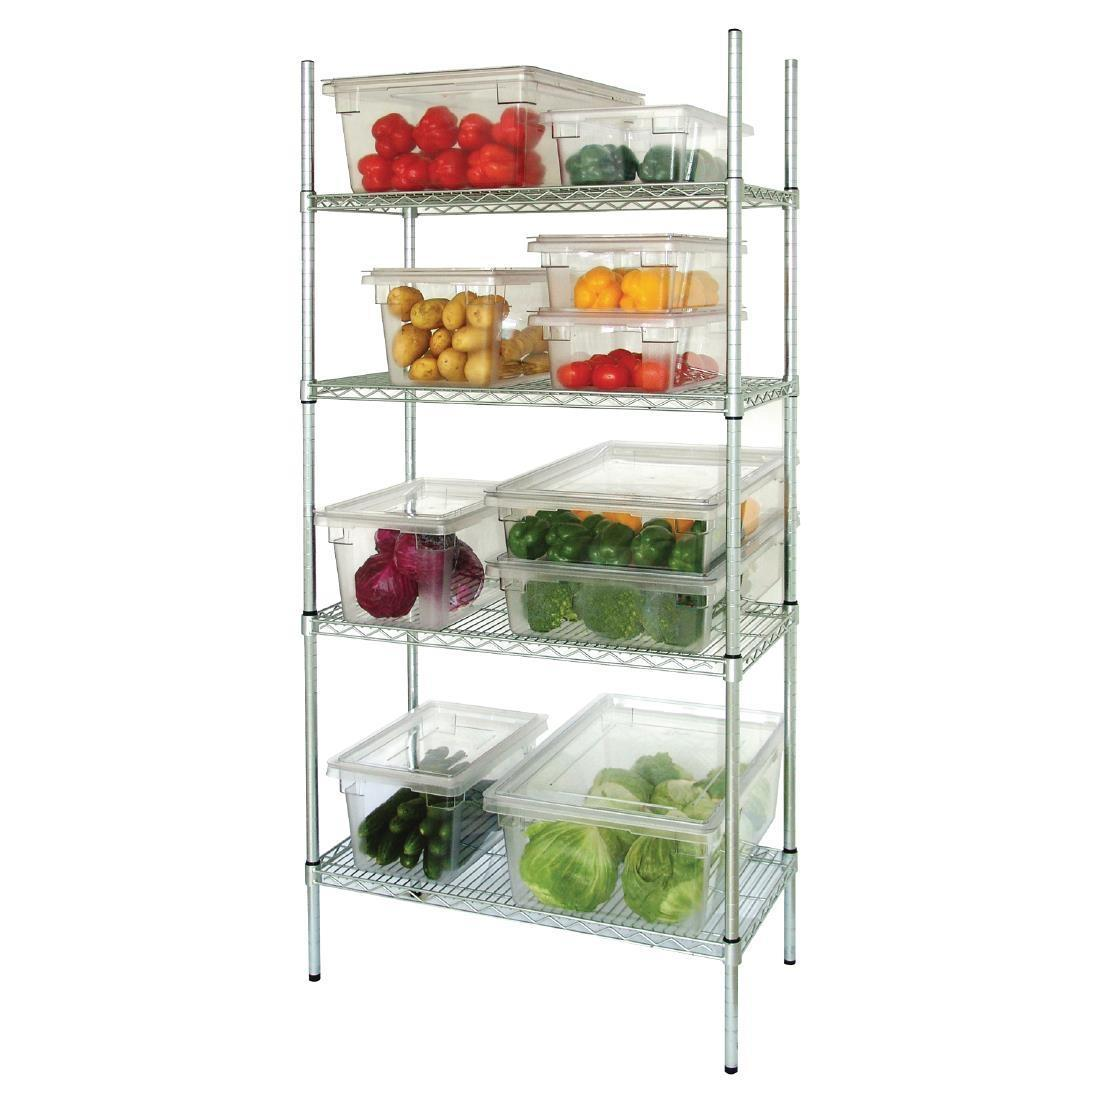 Vogue 4 Tier Wire Shelving Kit 915x610mm - U256